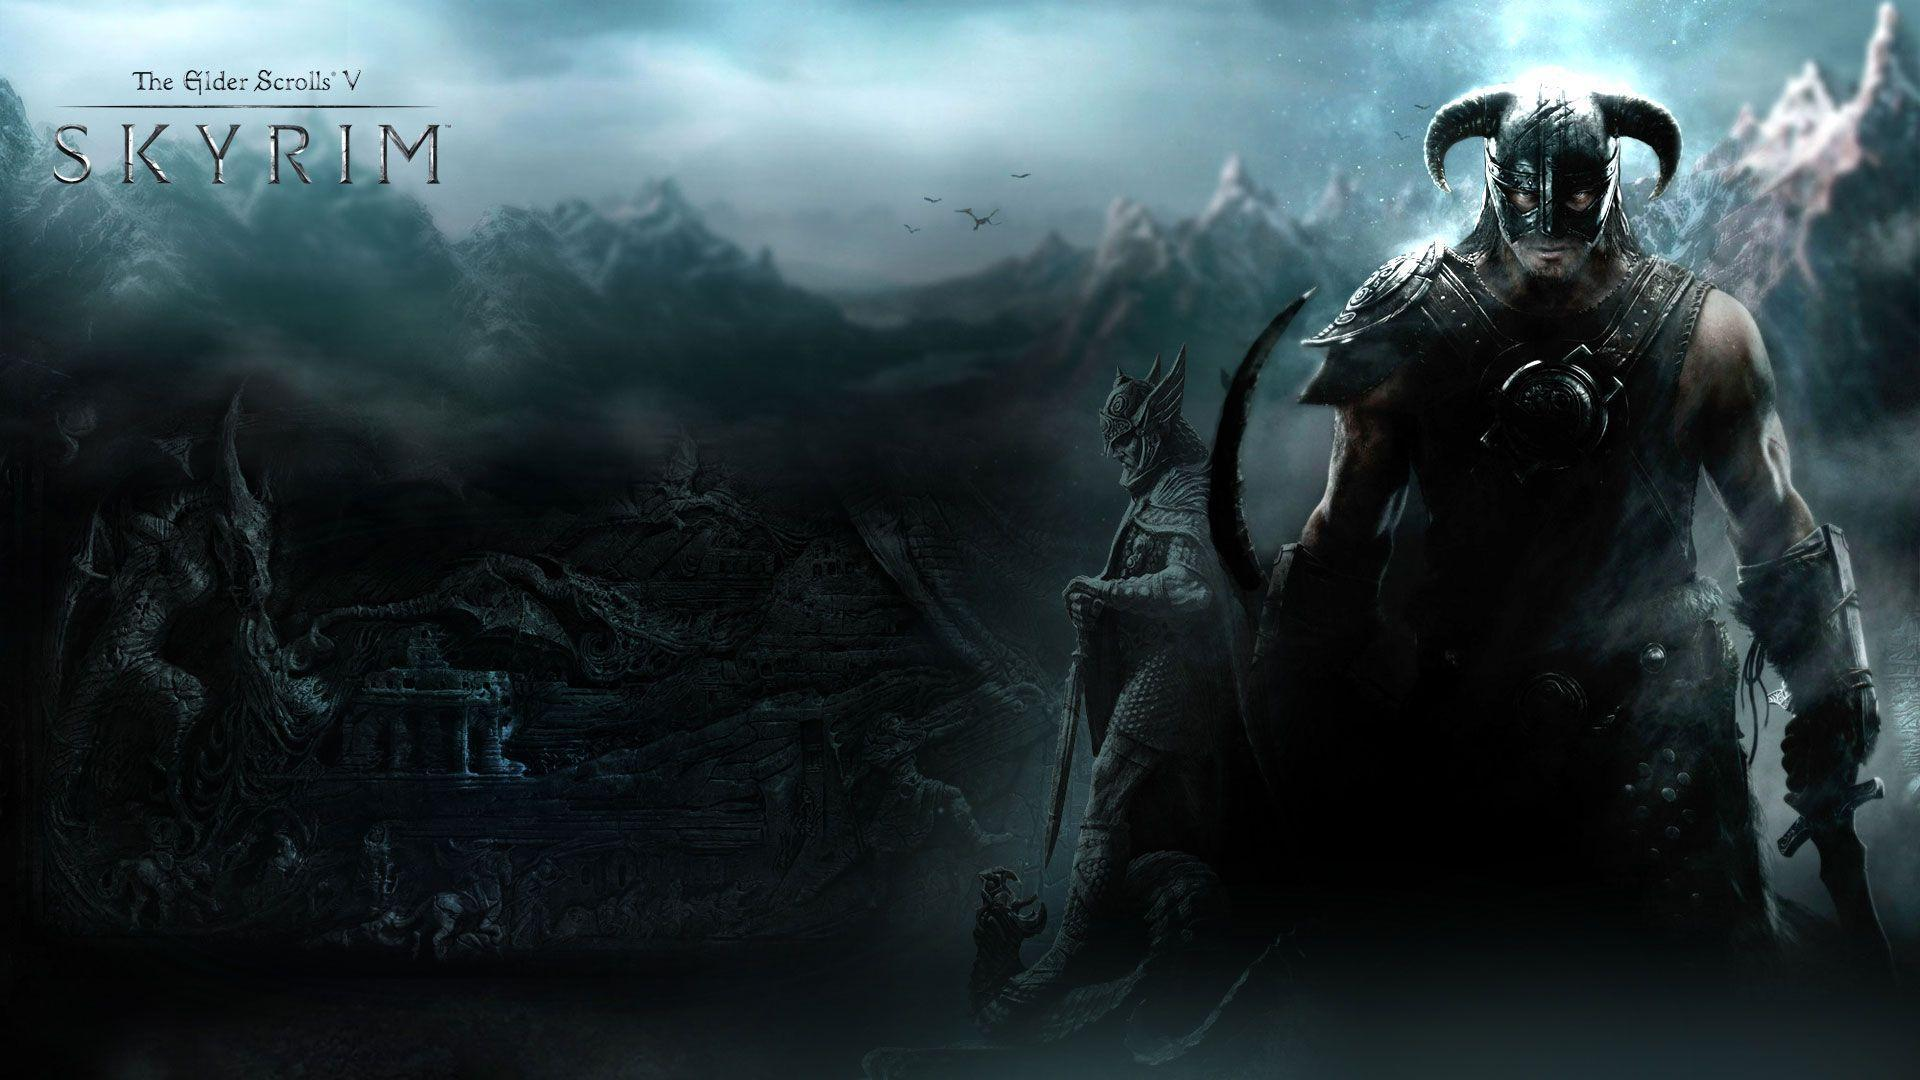 skyrim hd wallpapers 1366x768 - photo #36